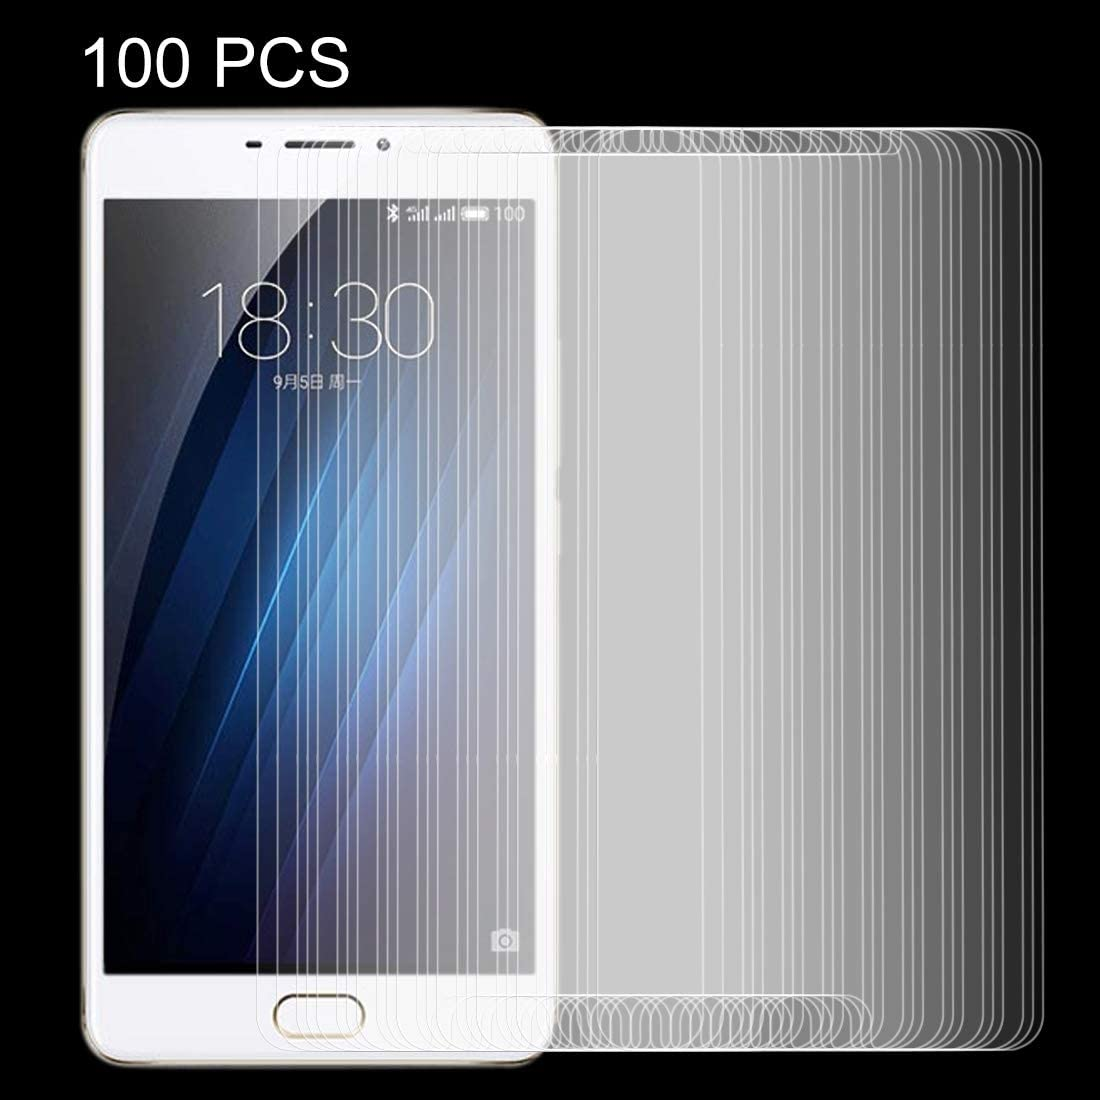 ZYS Screen Protector 100 PCS for Meizu M3 Max//Meilan Max 0.26mm 9H Surface Hardness Explosion-Proof Non-Full Screen Tempered Glass Screen Film